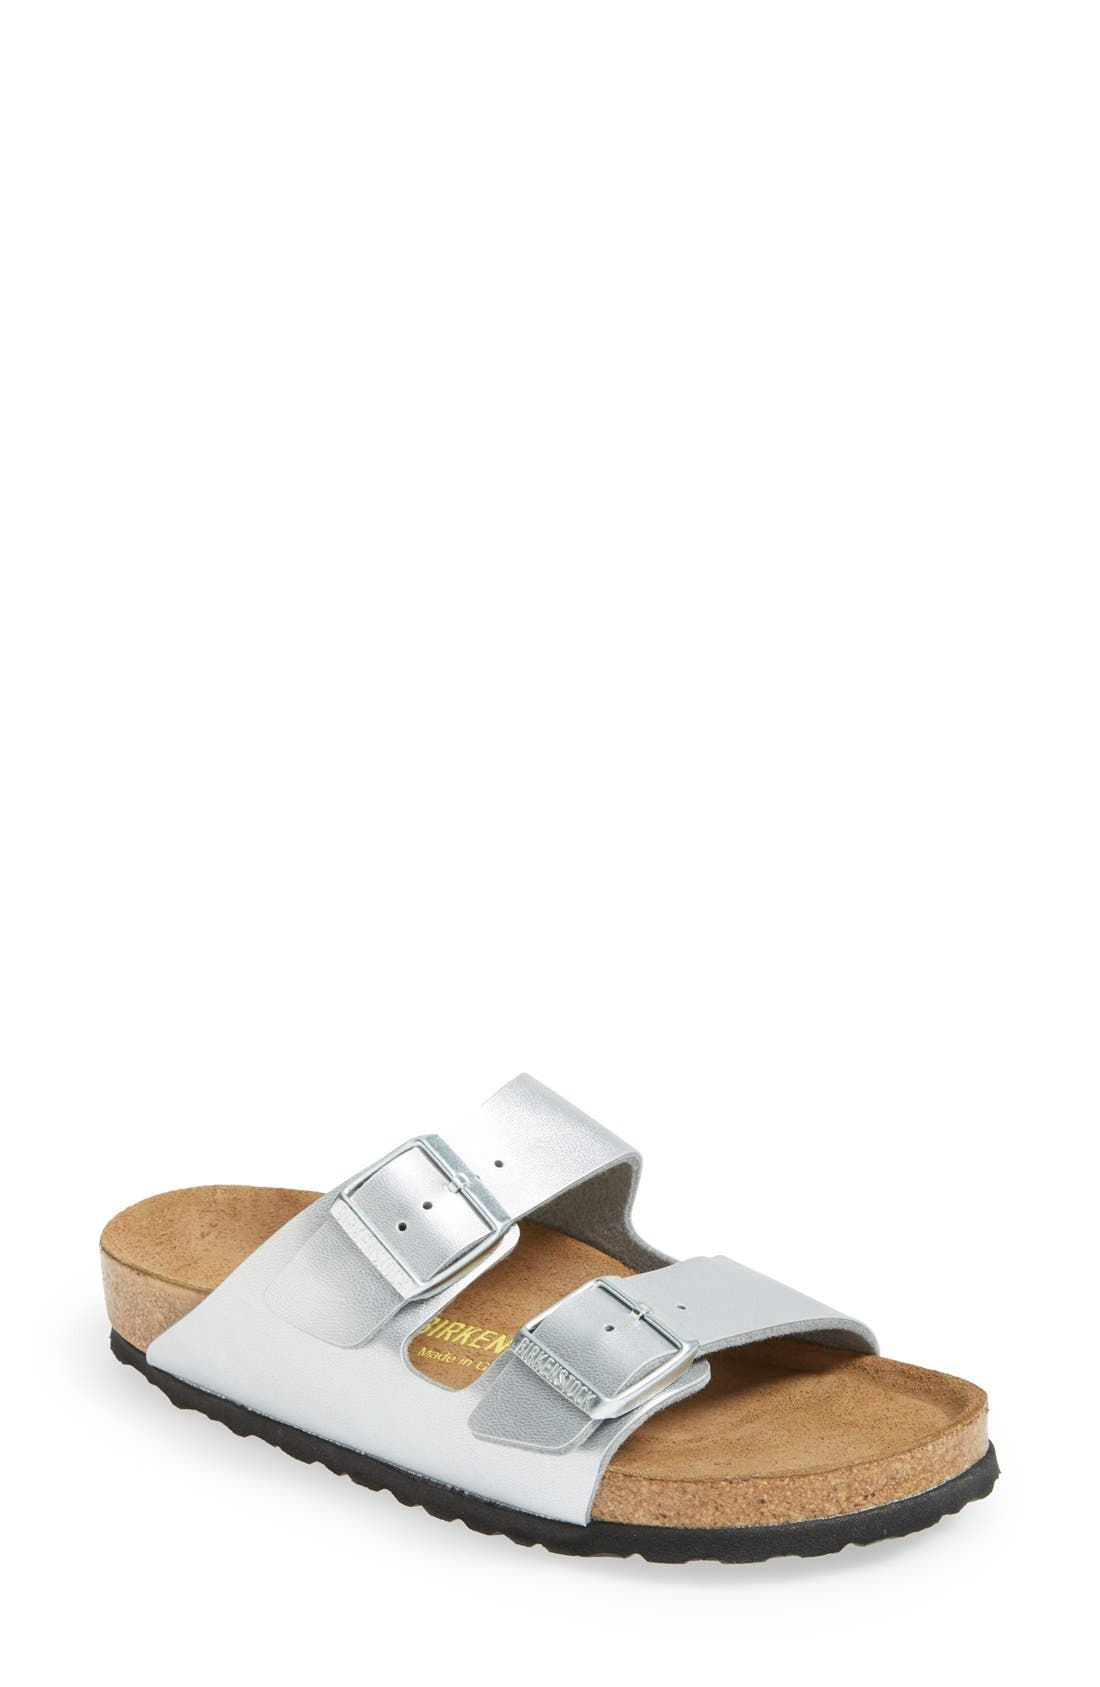 Birkenstock 'Arizona Birko-Flor' Soft Footbed Sandal (Women)